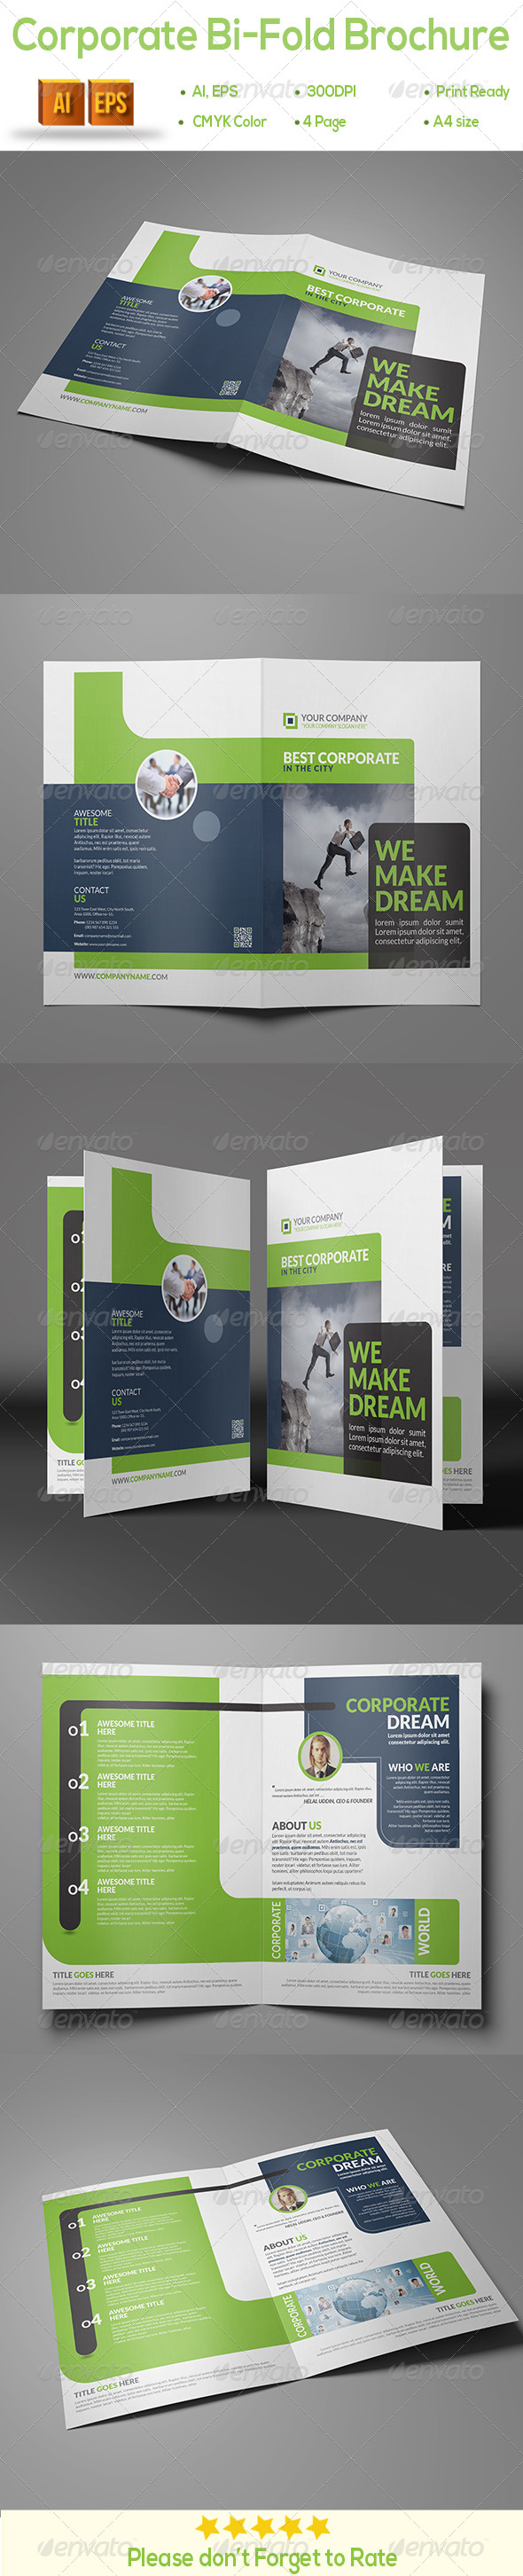 GraphicRiver Corporate Bi-Fold Brochure 8618834